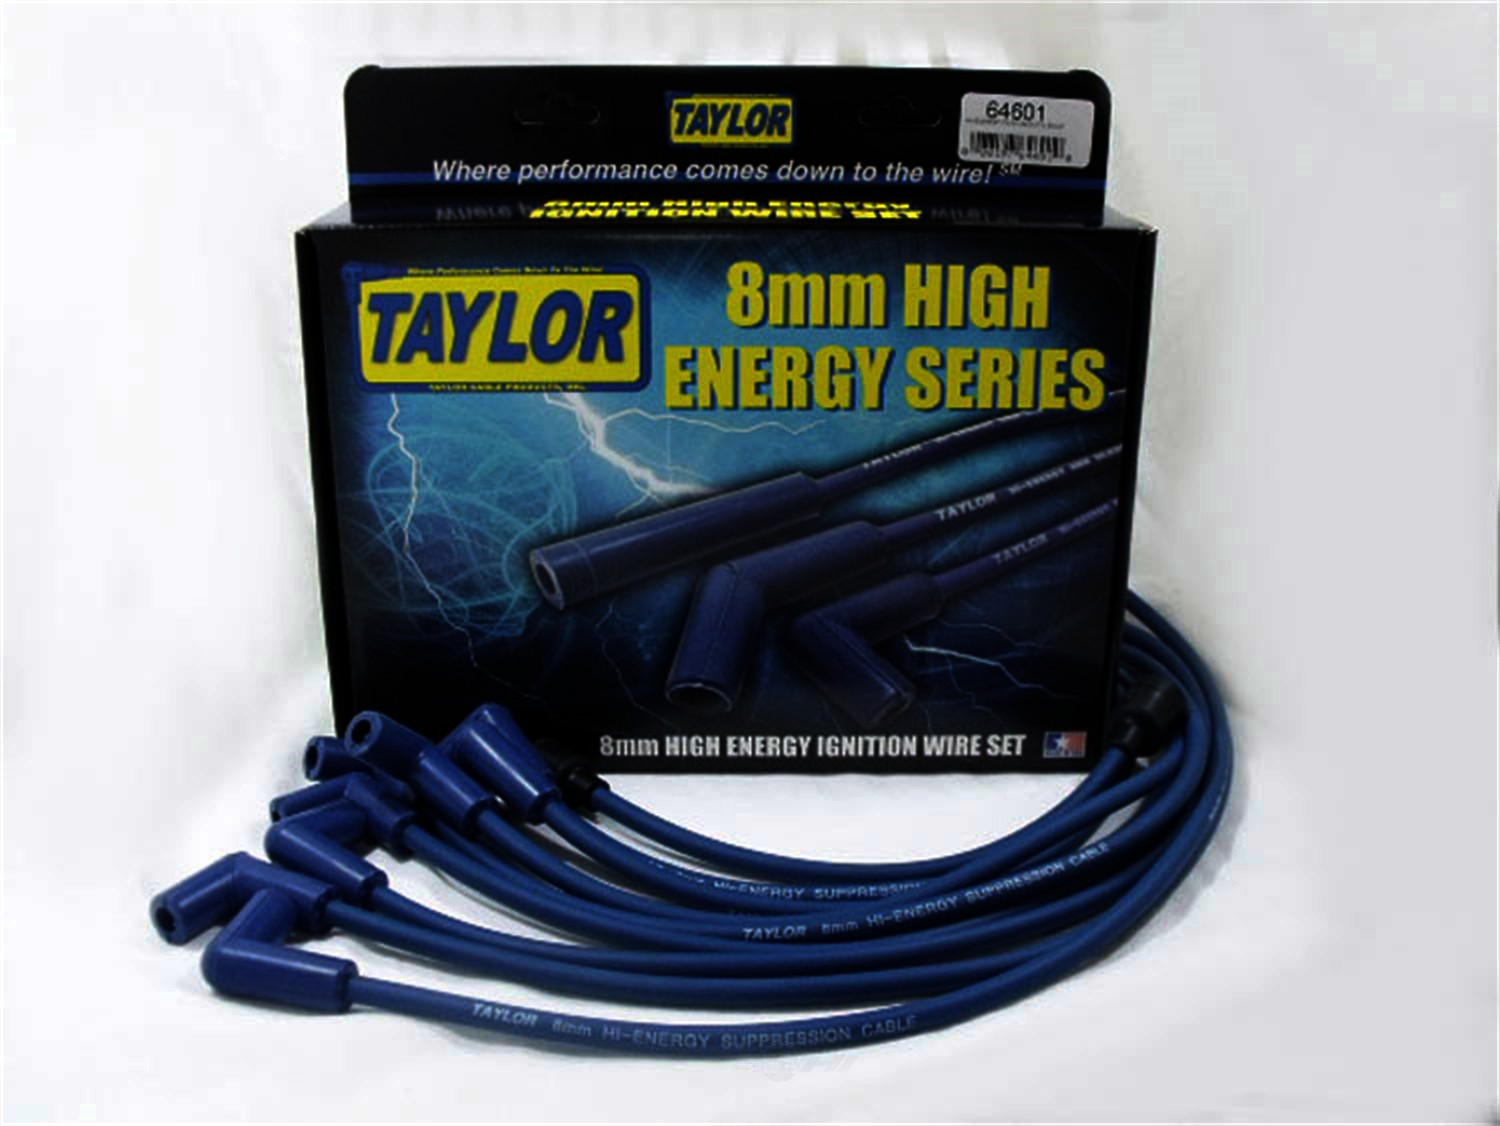 TAYLOR CABLE - High Energy Ignition Wire Set - TAY 64601